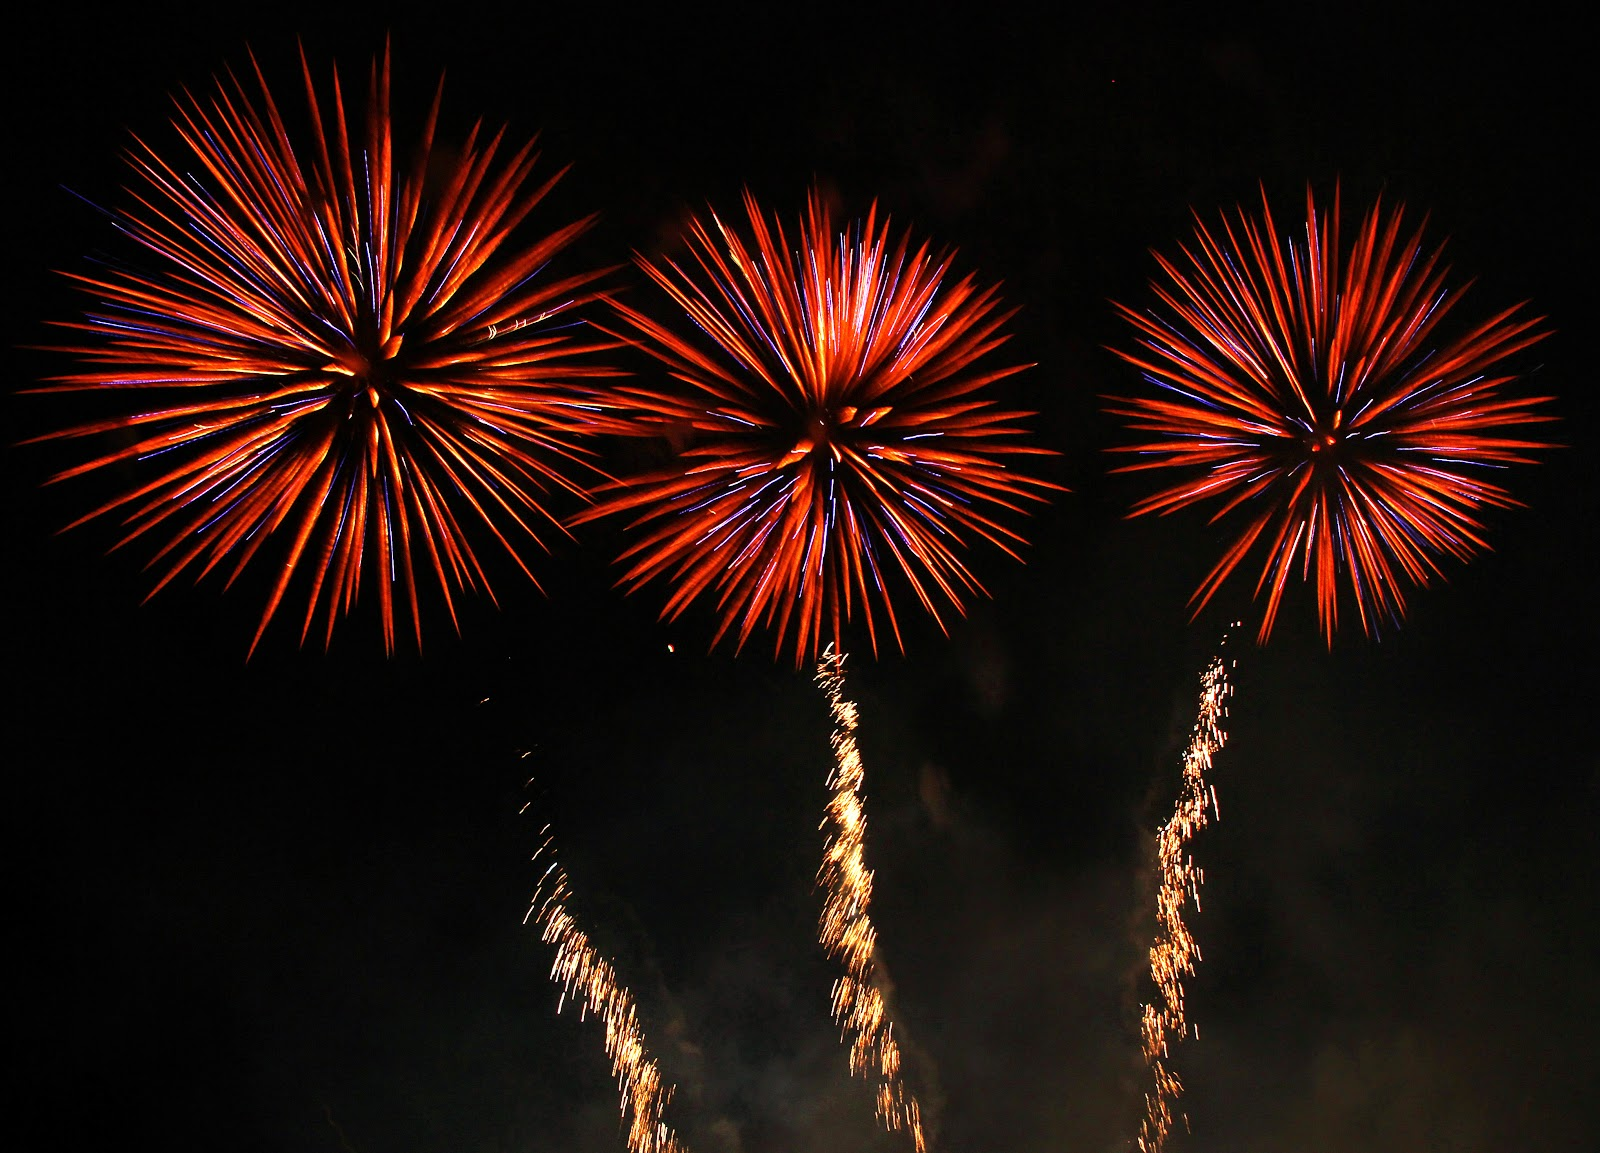 International Fireworks Festival in Pictures